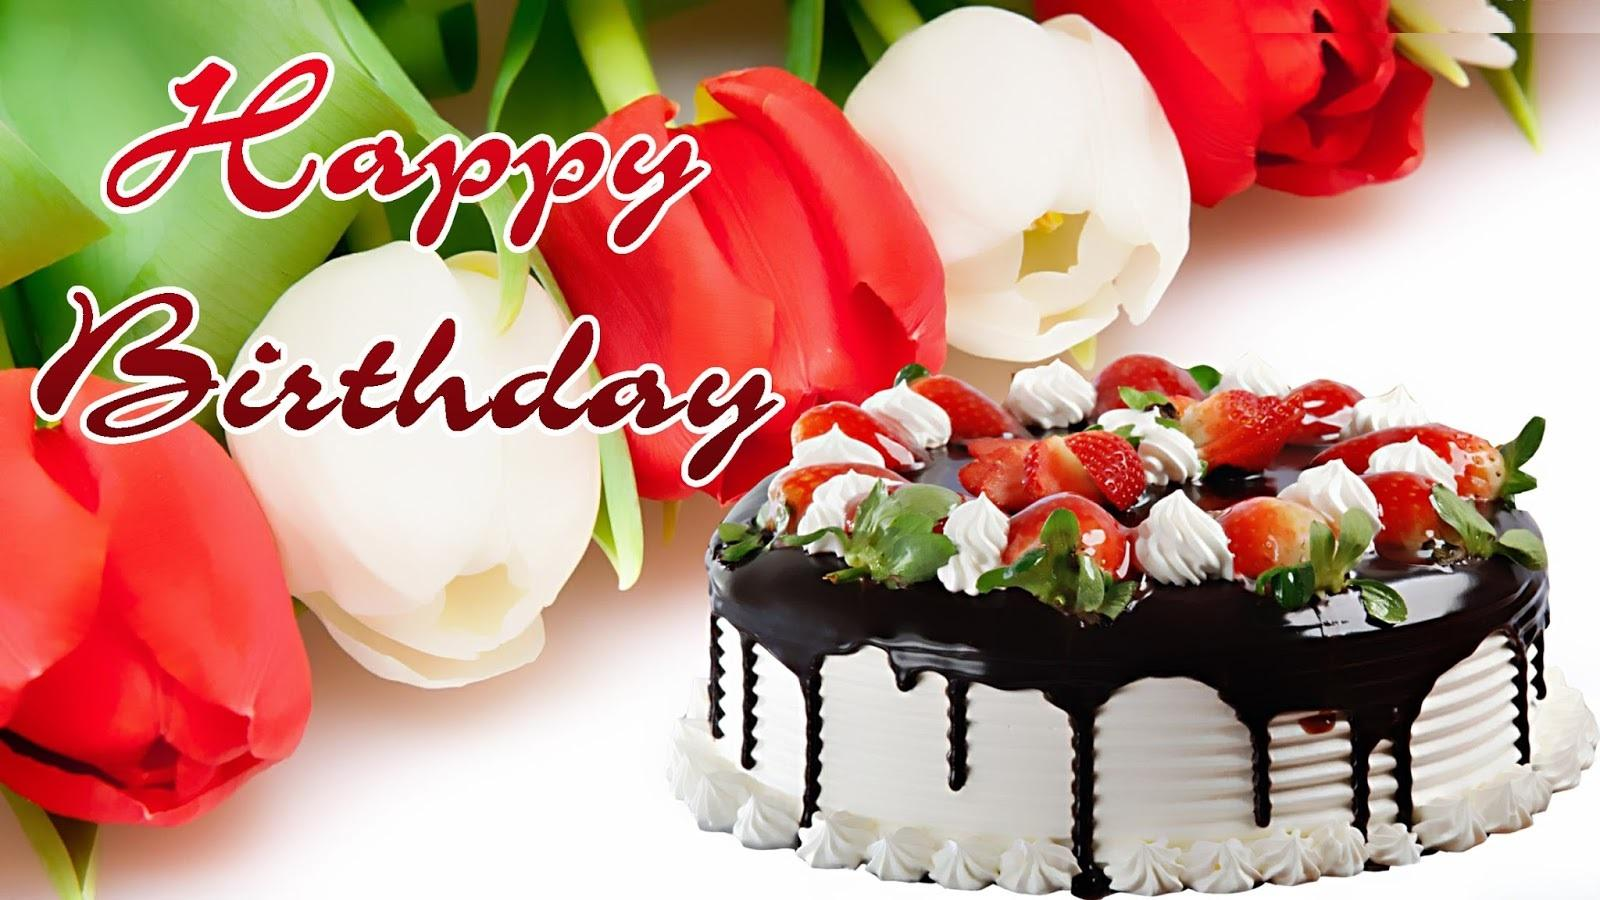 happy birthday hd images download ; happy-birthday-images-26